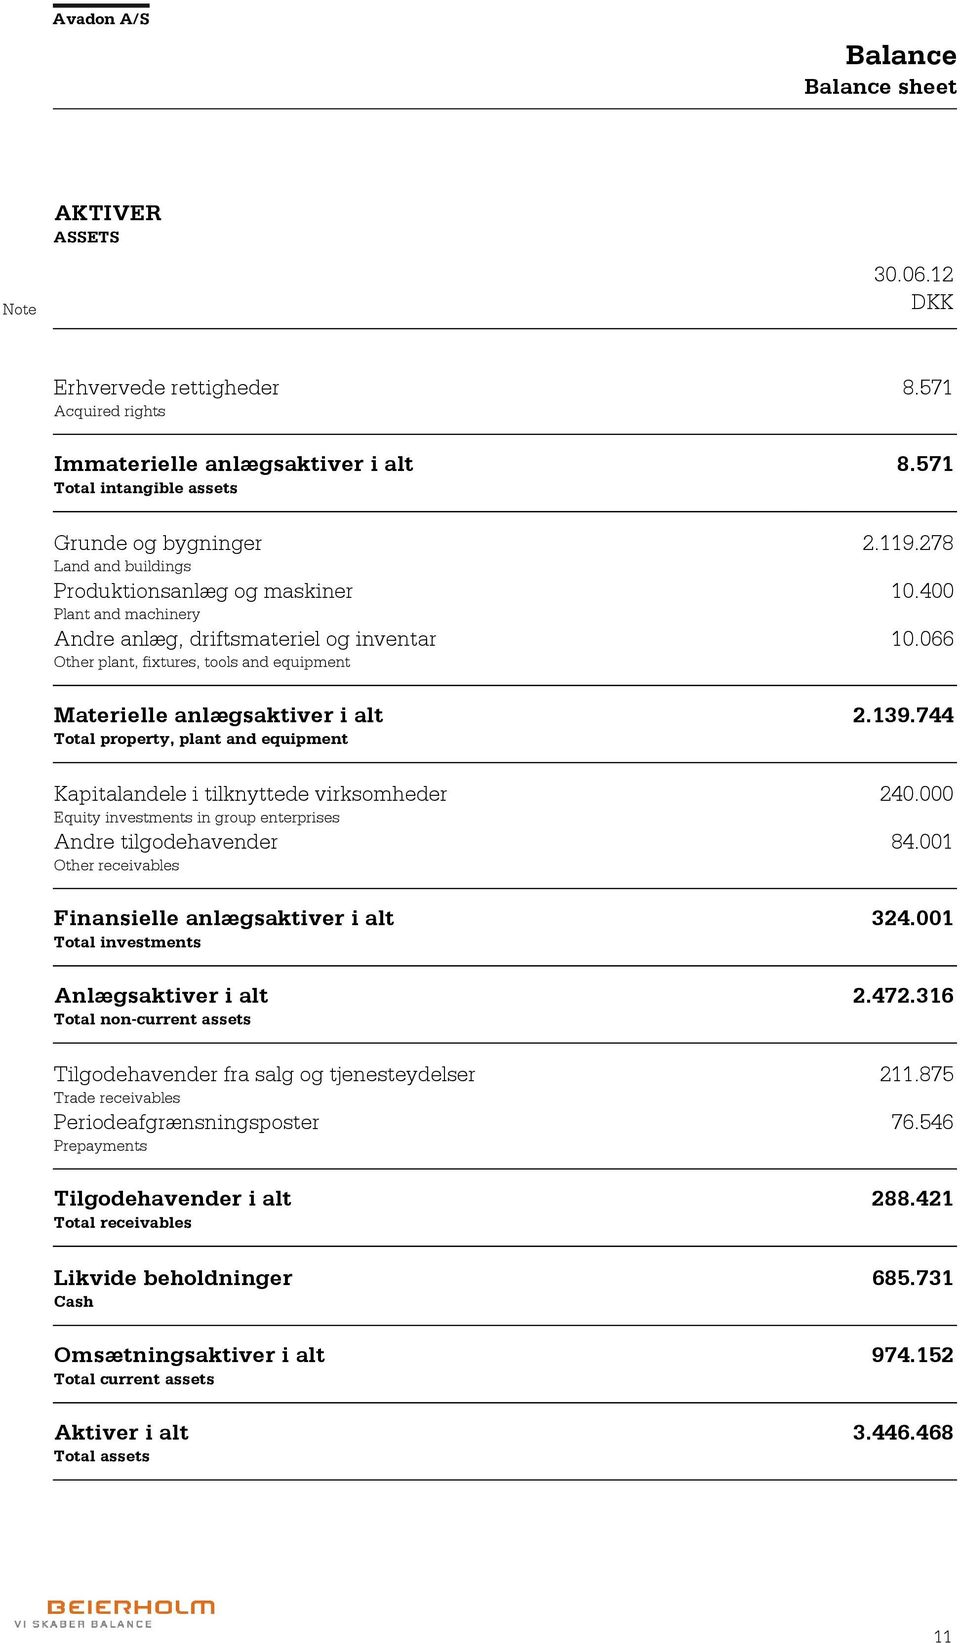 066 Other plant, fixtures, tools and equipment Materielle anlægsaktiver i alt 2.139.744 Total property, plant and equipment Kapitalandele i tilknyttede virksomheder 240.